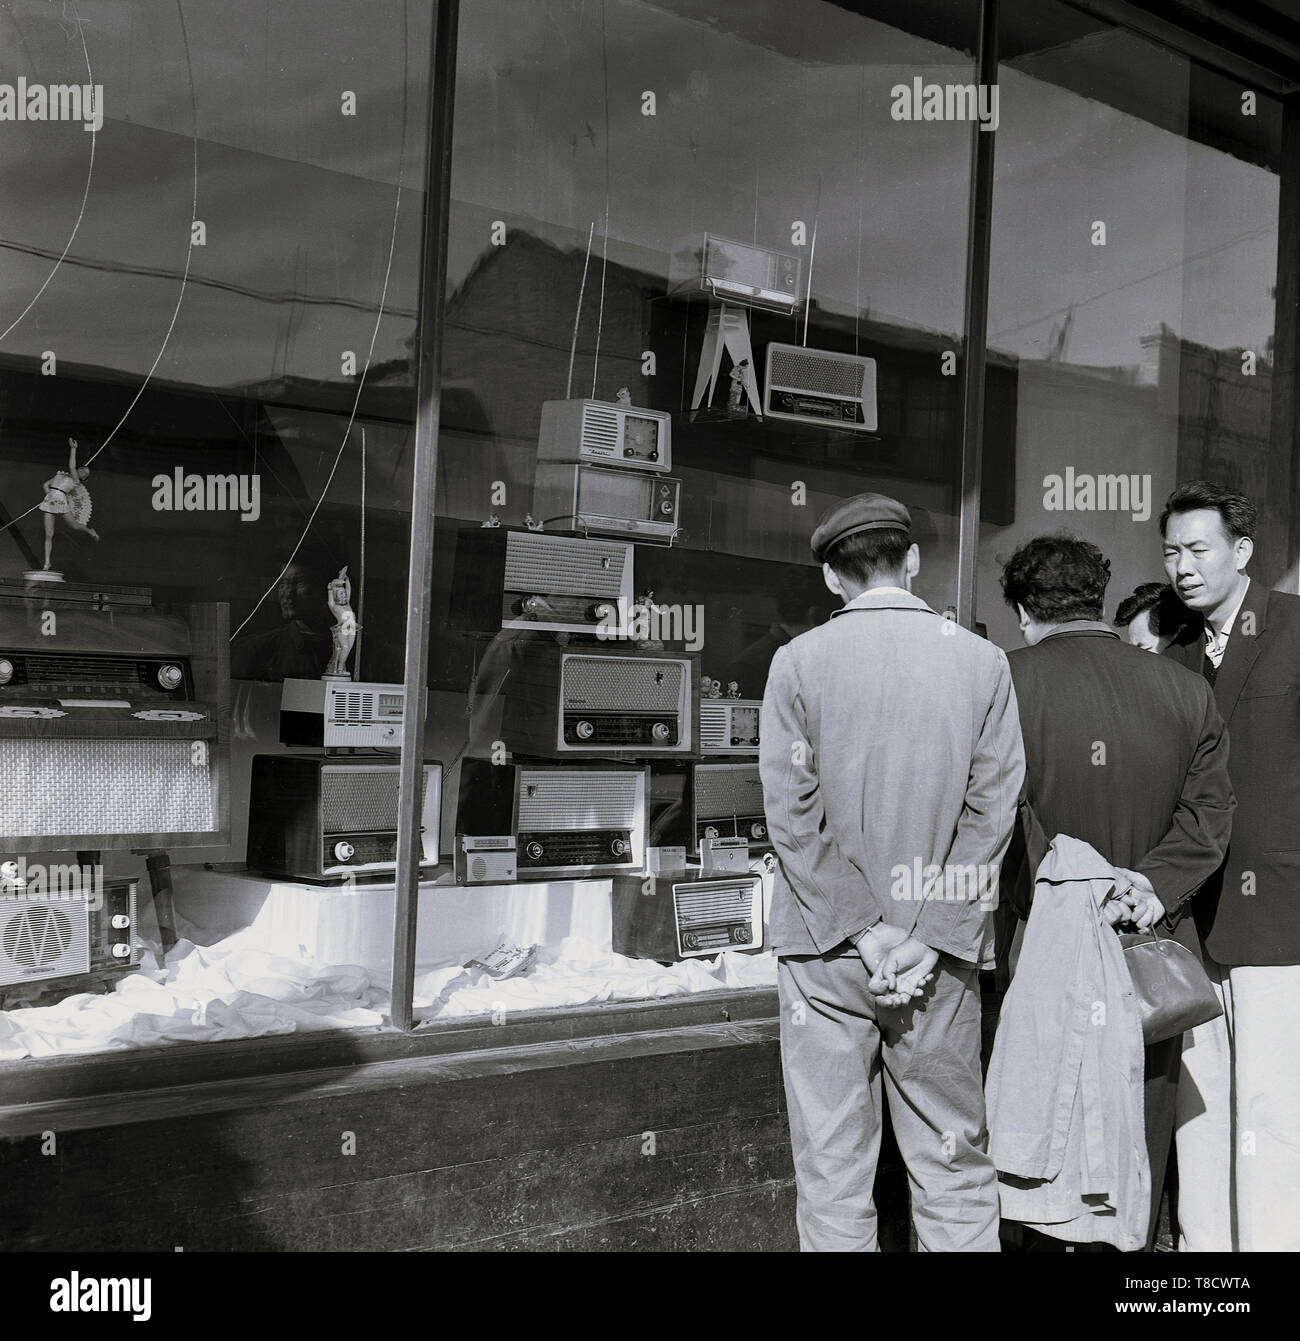 1950s, historical, Beijng, china, people looking through a store window at the range of radios on display in the shop. - Stock Image